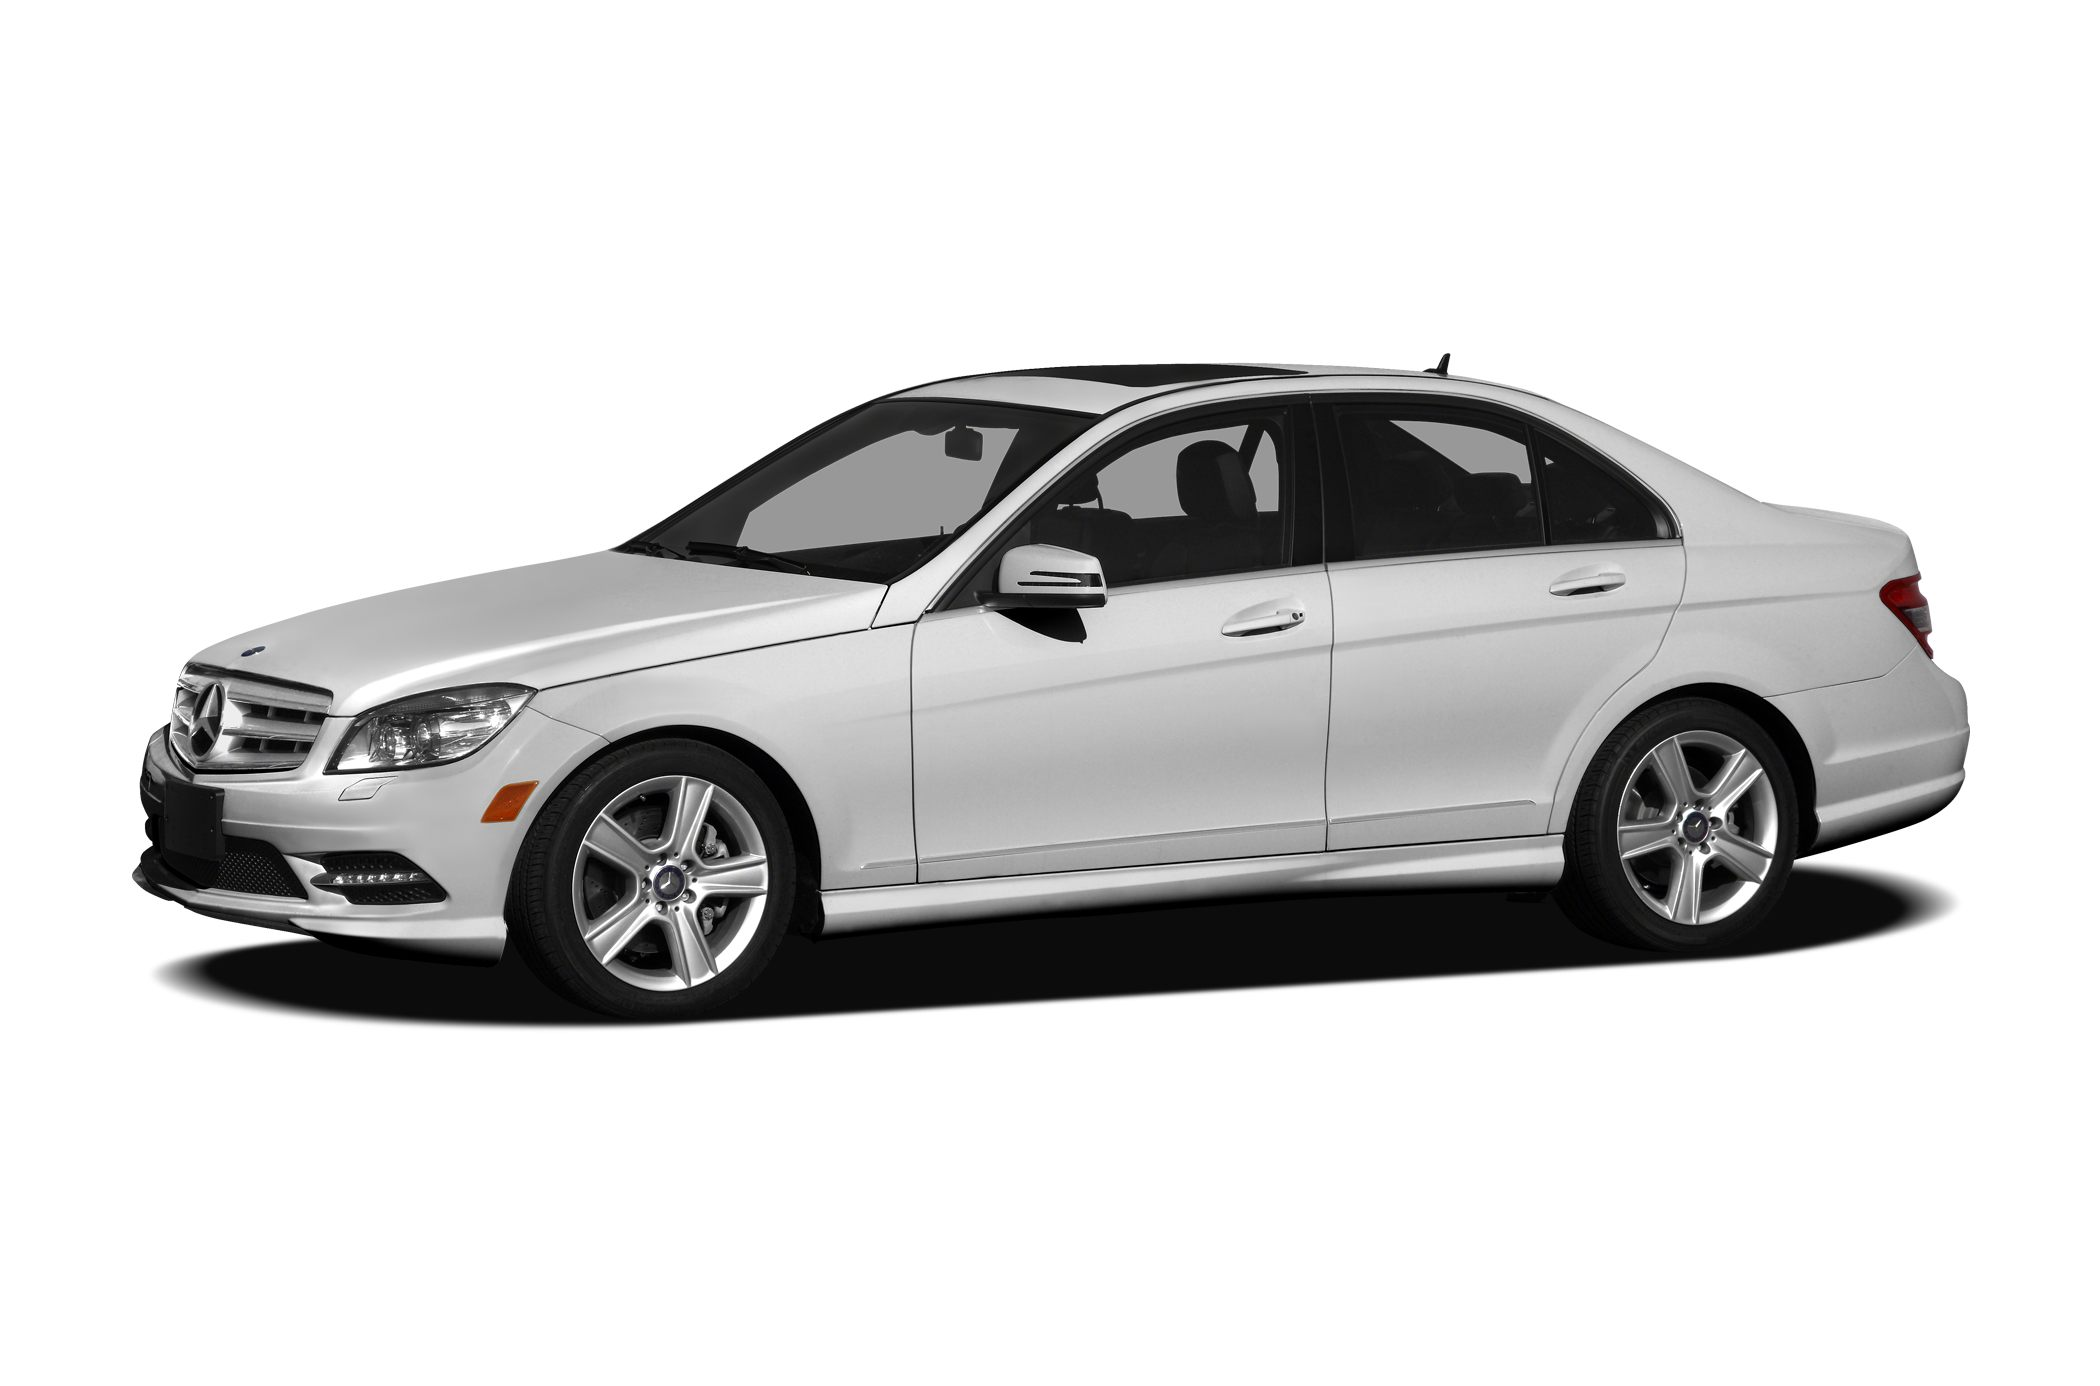 2011 MERCEDES C-Class C300 Set down the mouse because this deluxe Luxury Vehicle is the Sedan youv